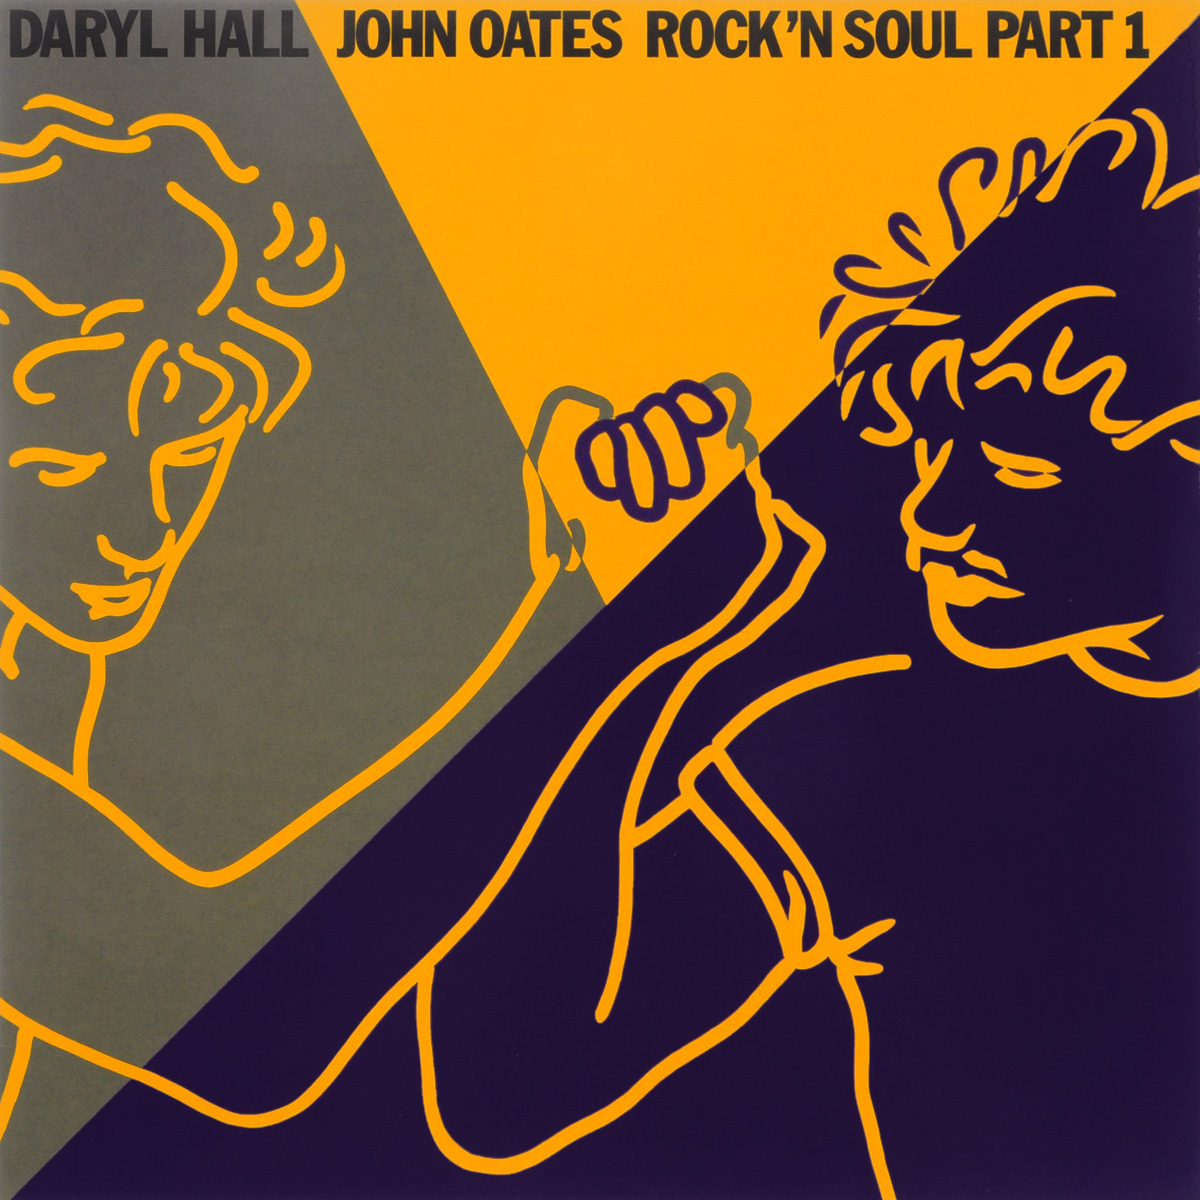 Дэрил Холл,Джон Оатс Daryl Hall, John Oates. Rock'n Soul. Part 1 (LP)